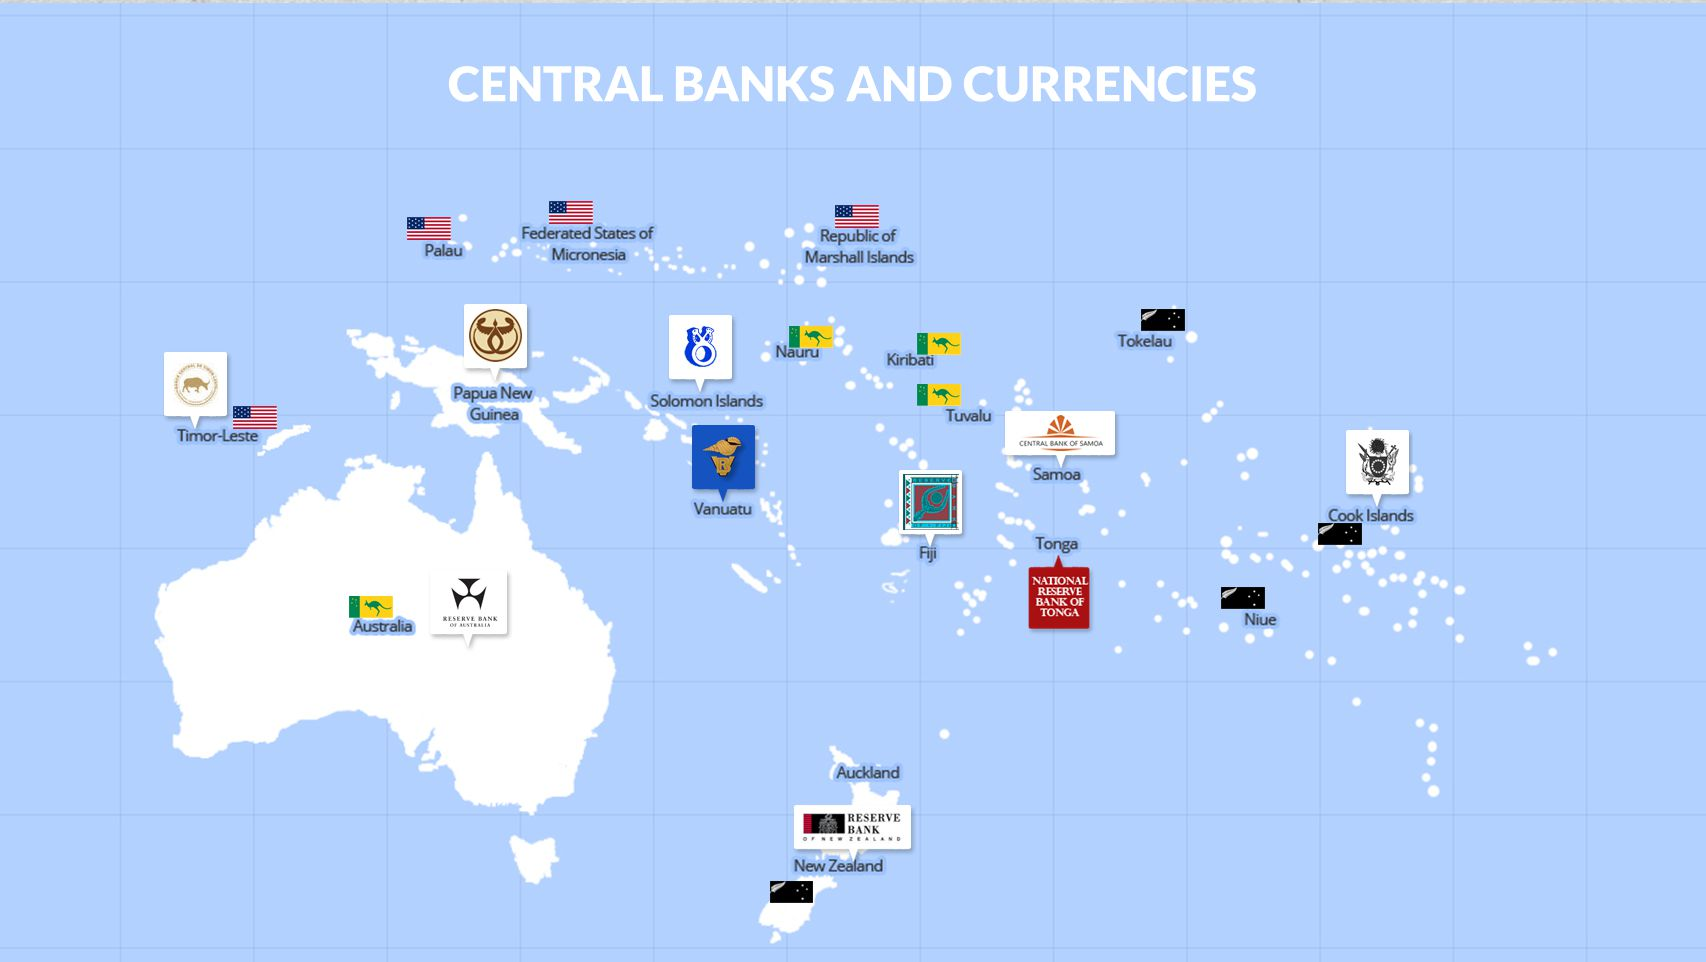 CENTRAL BANKS AND CURRENCIES